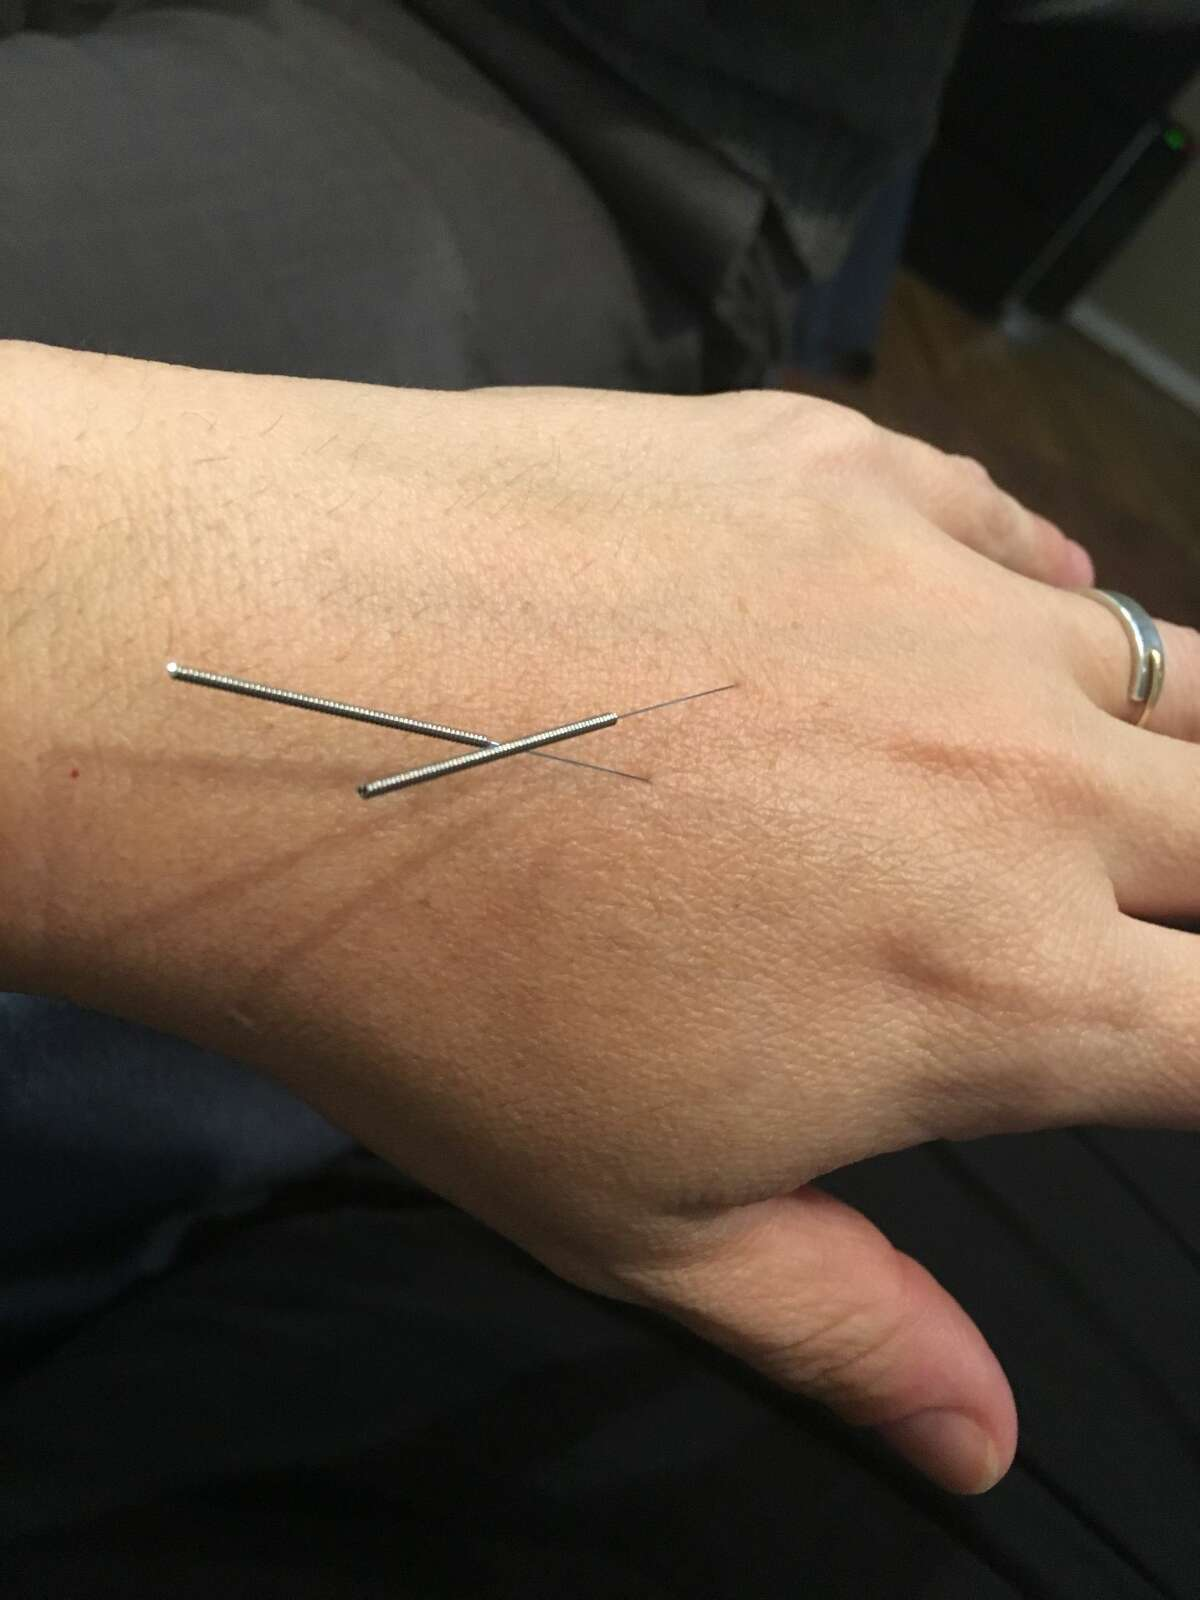 Elm City Wellness in New Haven offers acupuncture treatments.